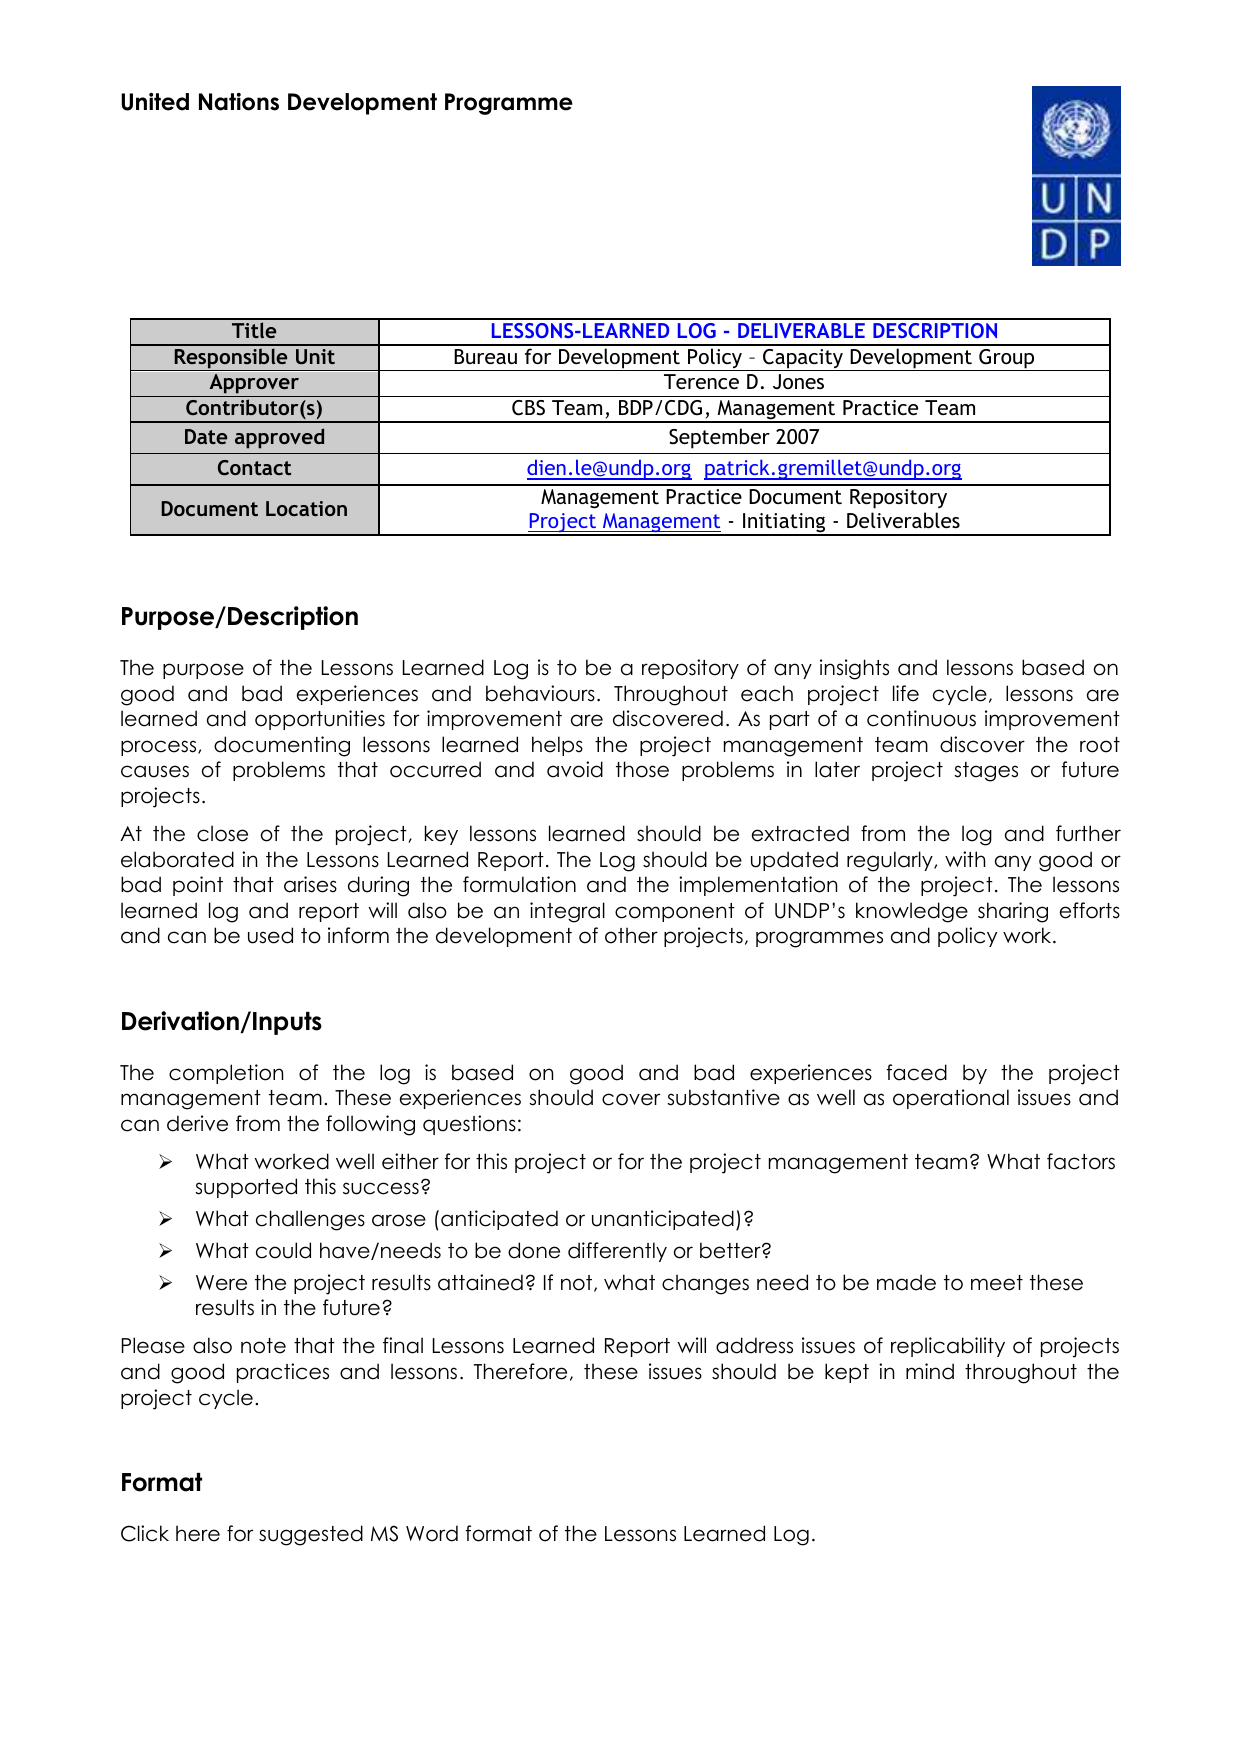 project management lessons learned report template] management, Presentation templates